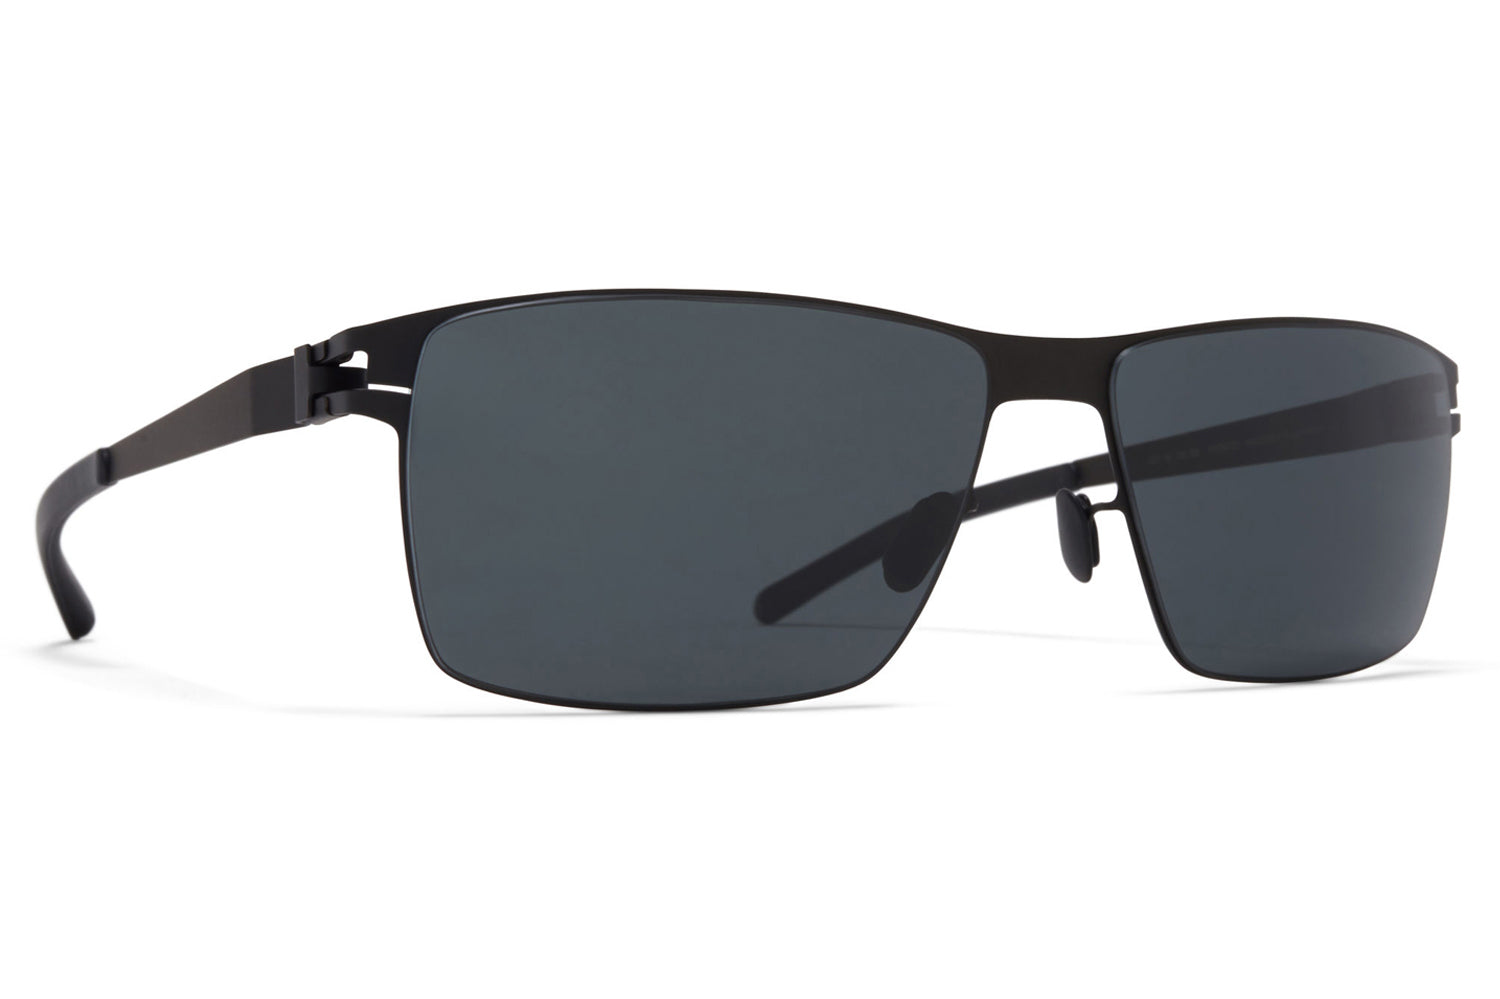 MYKITA - Pierce Sunglasses Black with MY+ Black Polarized Lenses